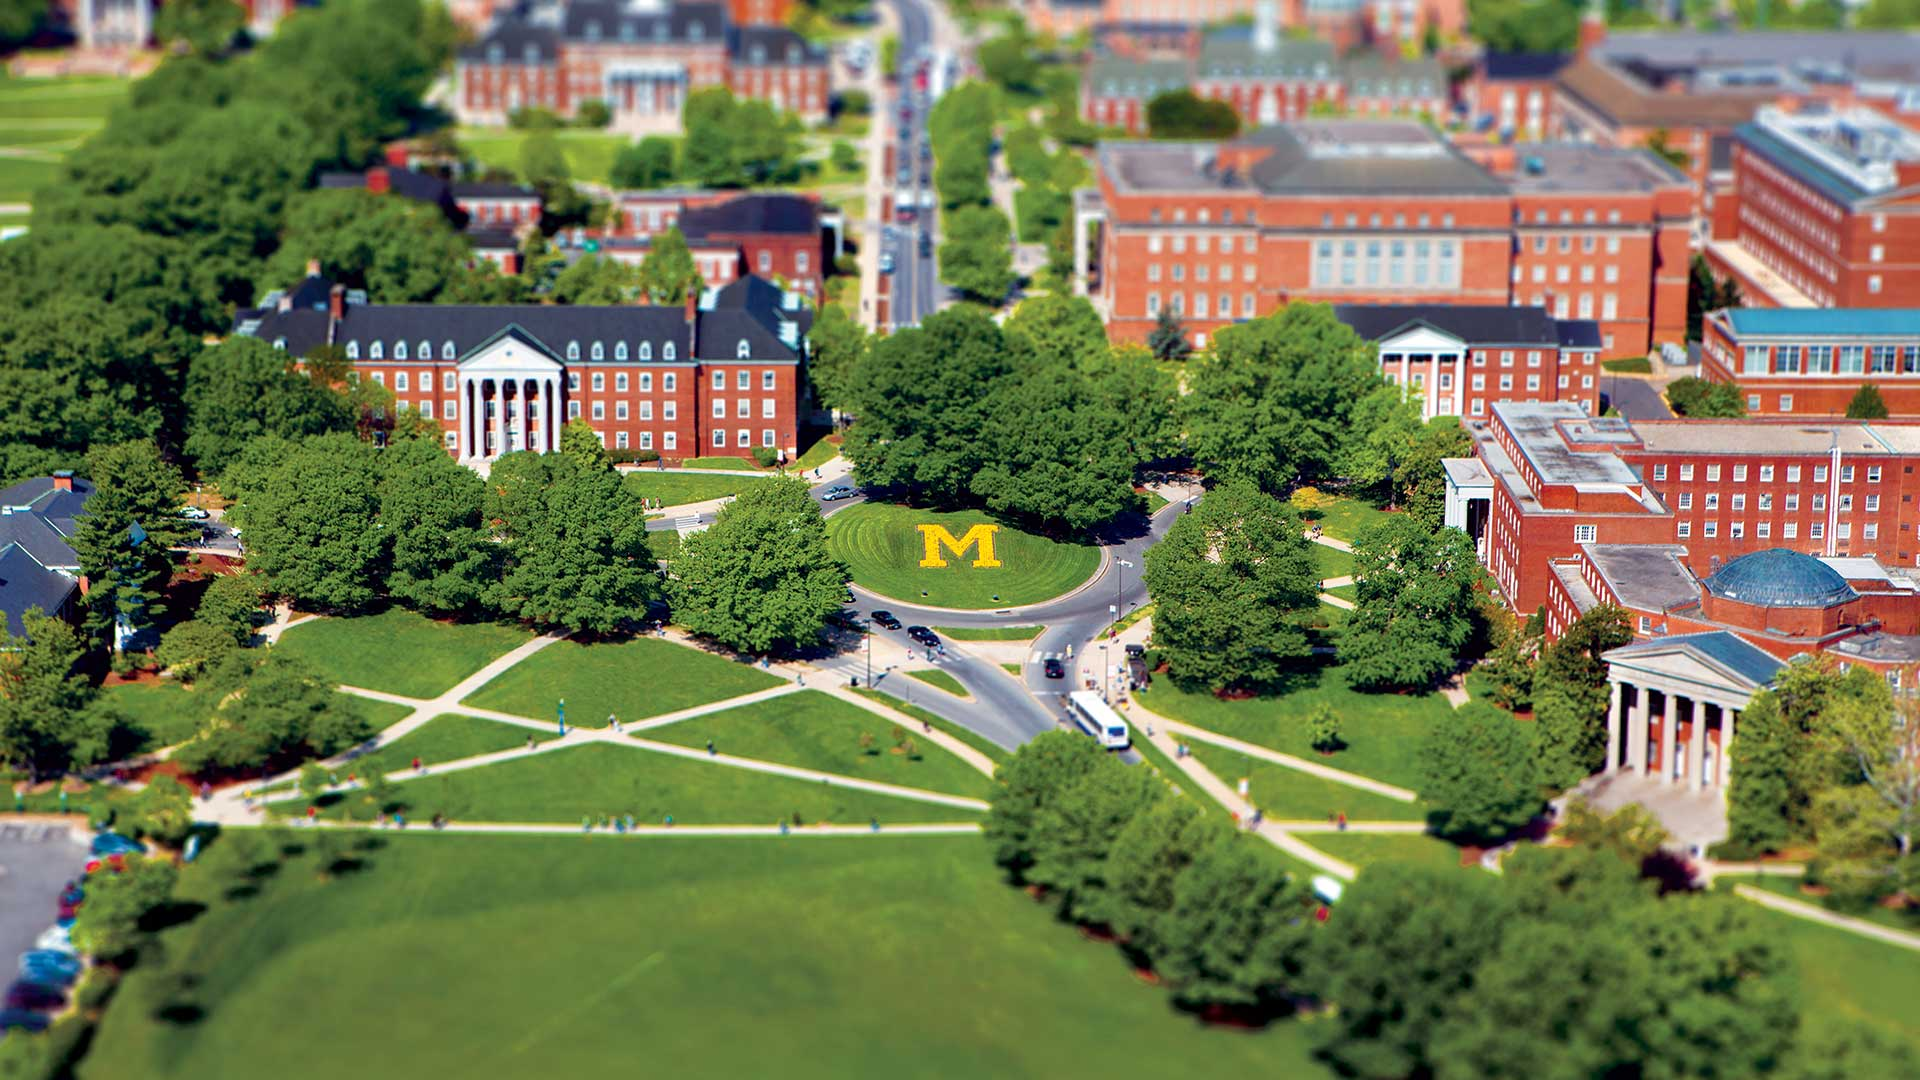 an essay on my desire to attend the university of maryland Free college experience papers should i attend the university of illinois in urbana campaign maryland where my high school was 10% black, 60% white.